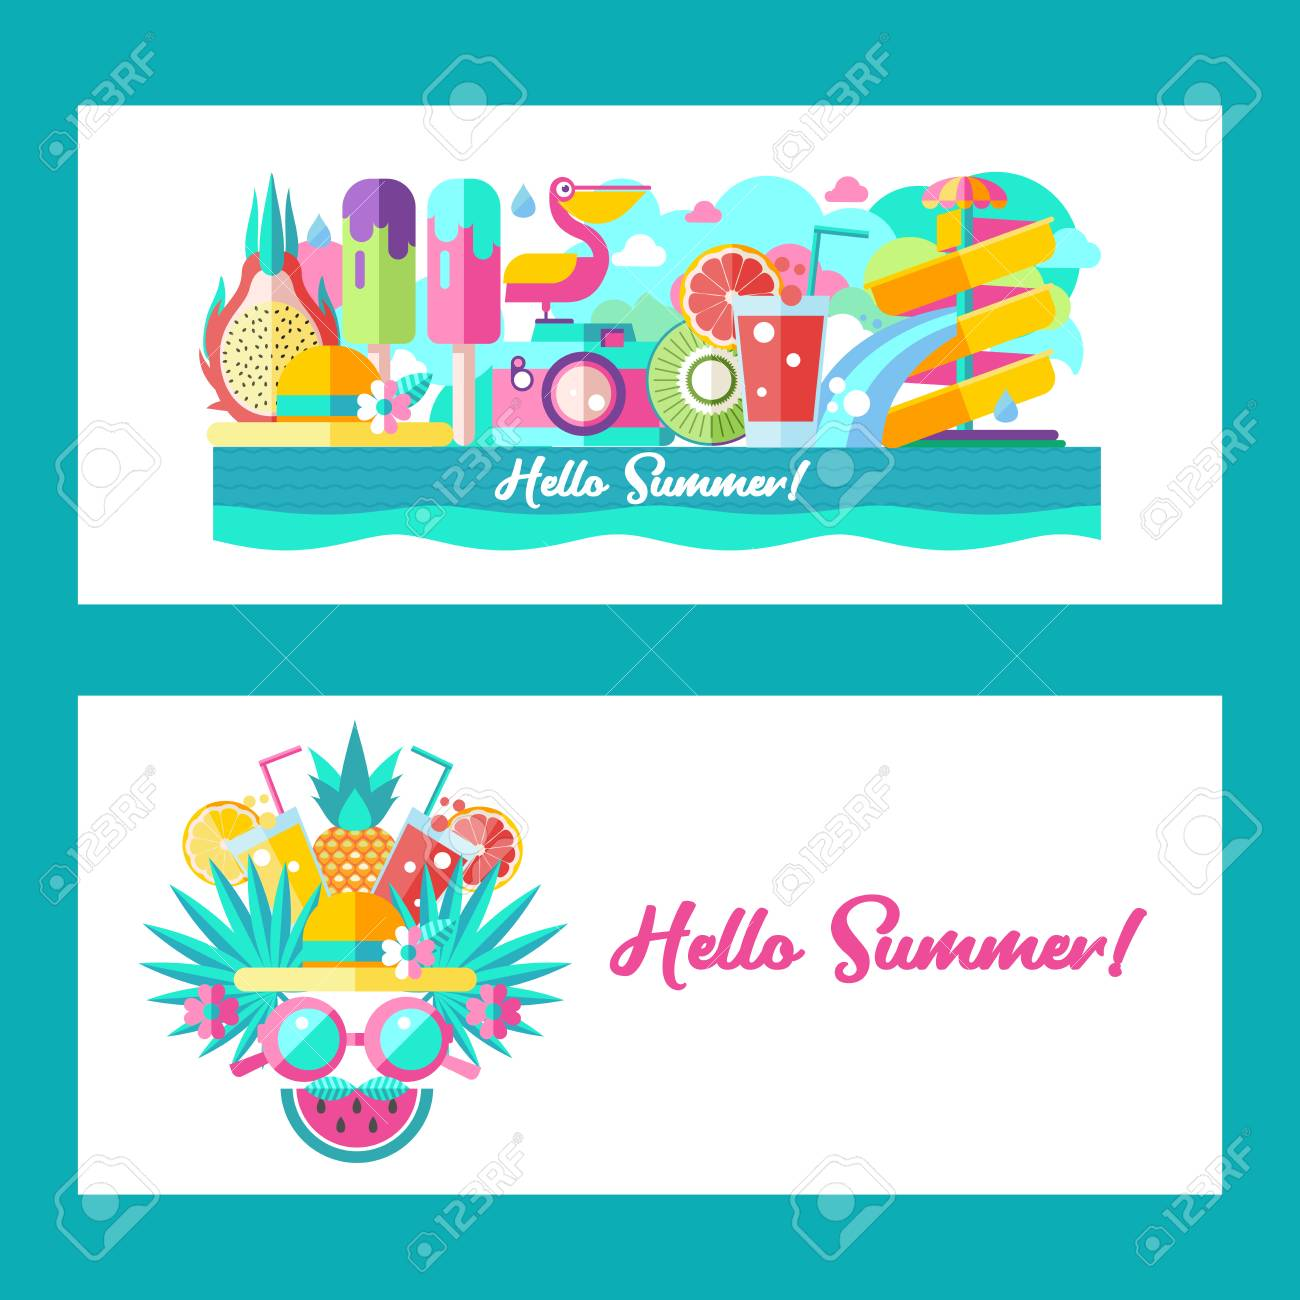 Hello Summer Landscape Design Vector Illustration A Set Of Clipart On The Theme